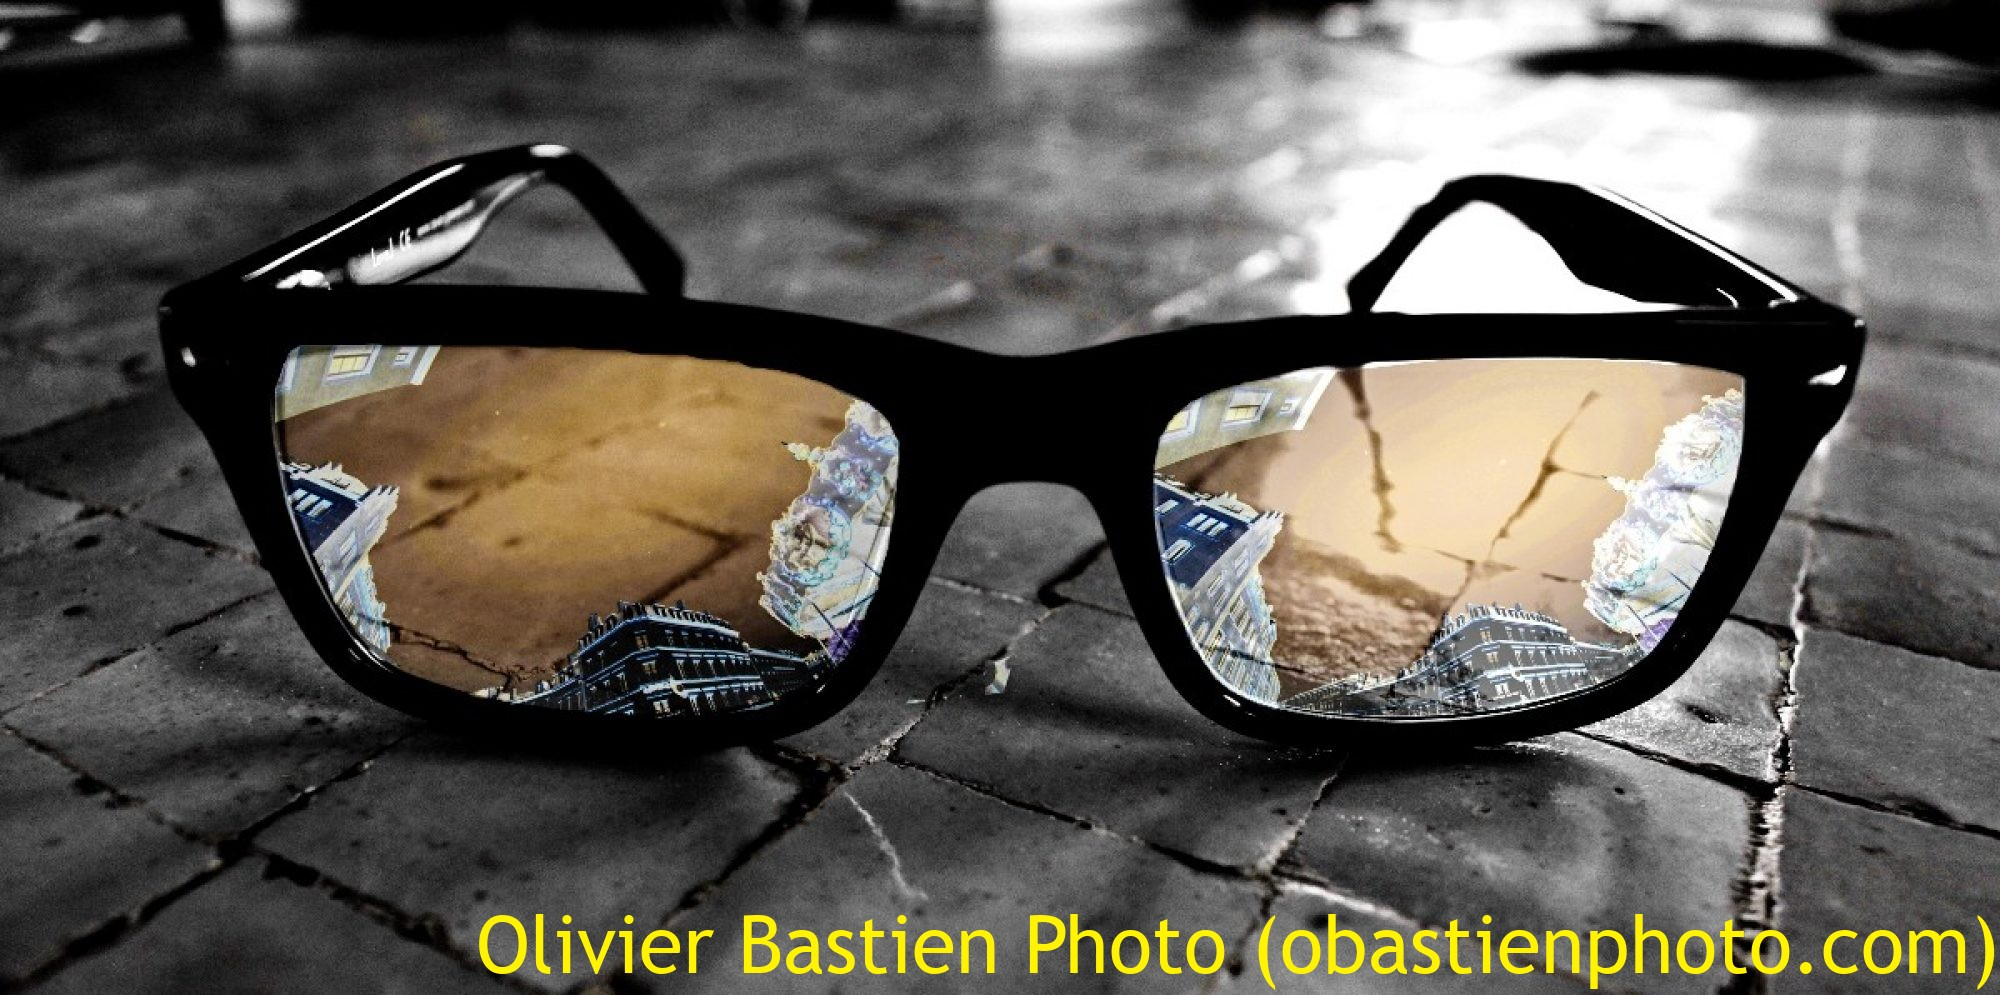 Olivier Bastien photographe (Photos et Conception)